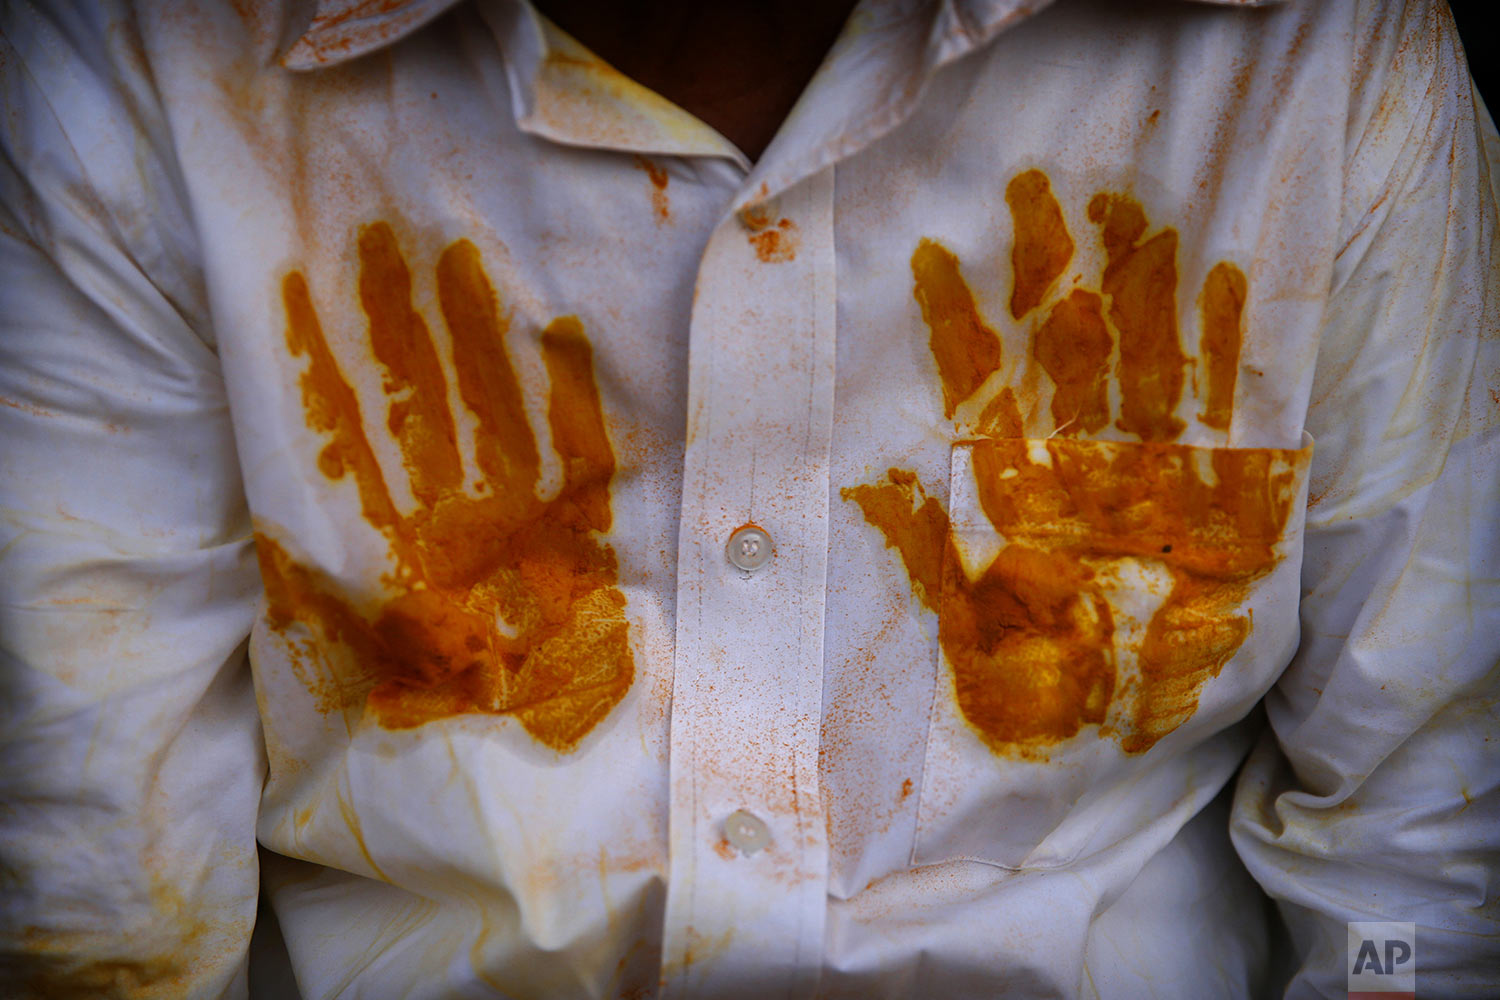 A devotee's shirt has handprints of the spice turmeric during the celebration of the Bhandara Festival, or the Festival of Turmeric, at the Jejuri temple in Pune district, Maharashtra state, India, Monday, June 3, 2019. (AP Photo/Rafiq Maqbool)